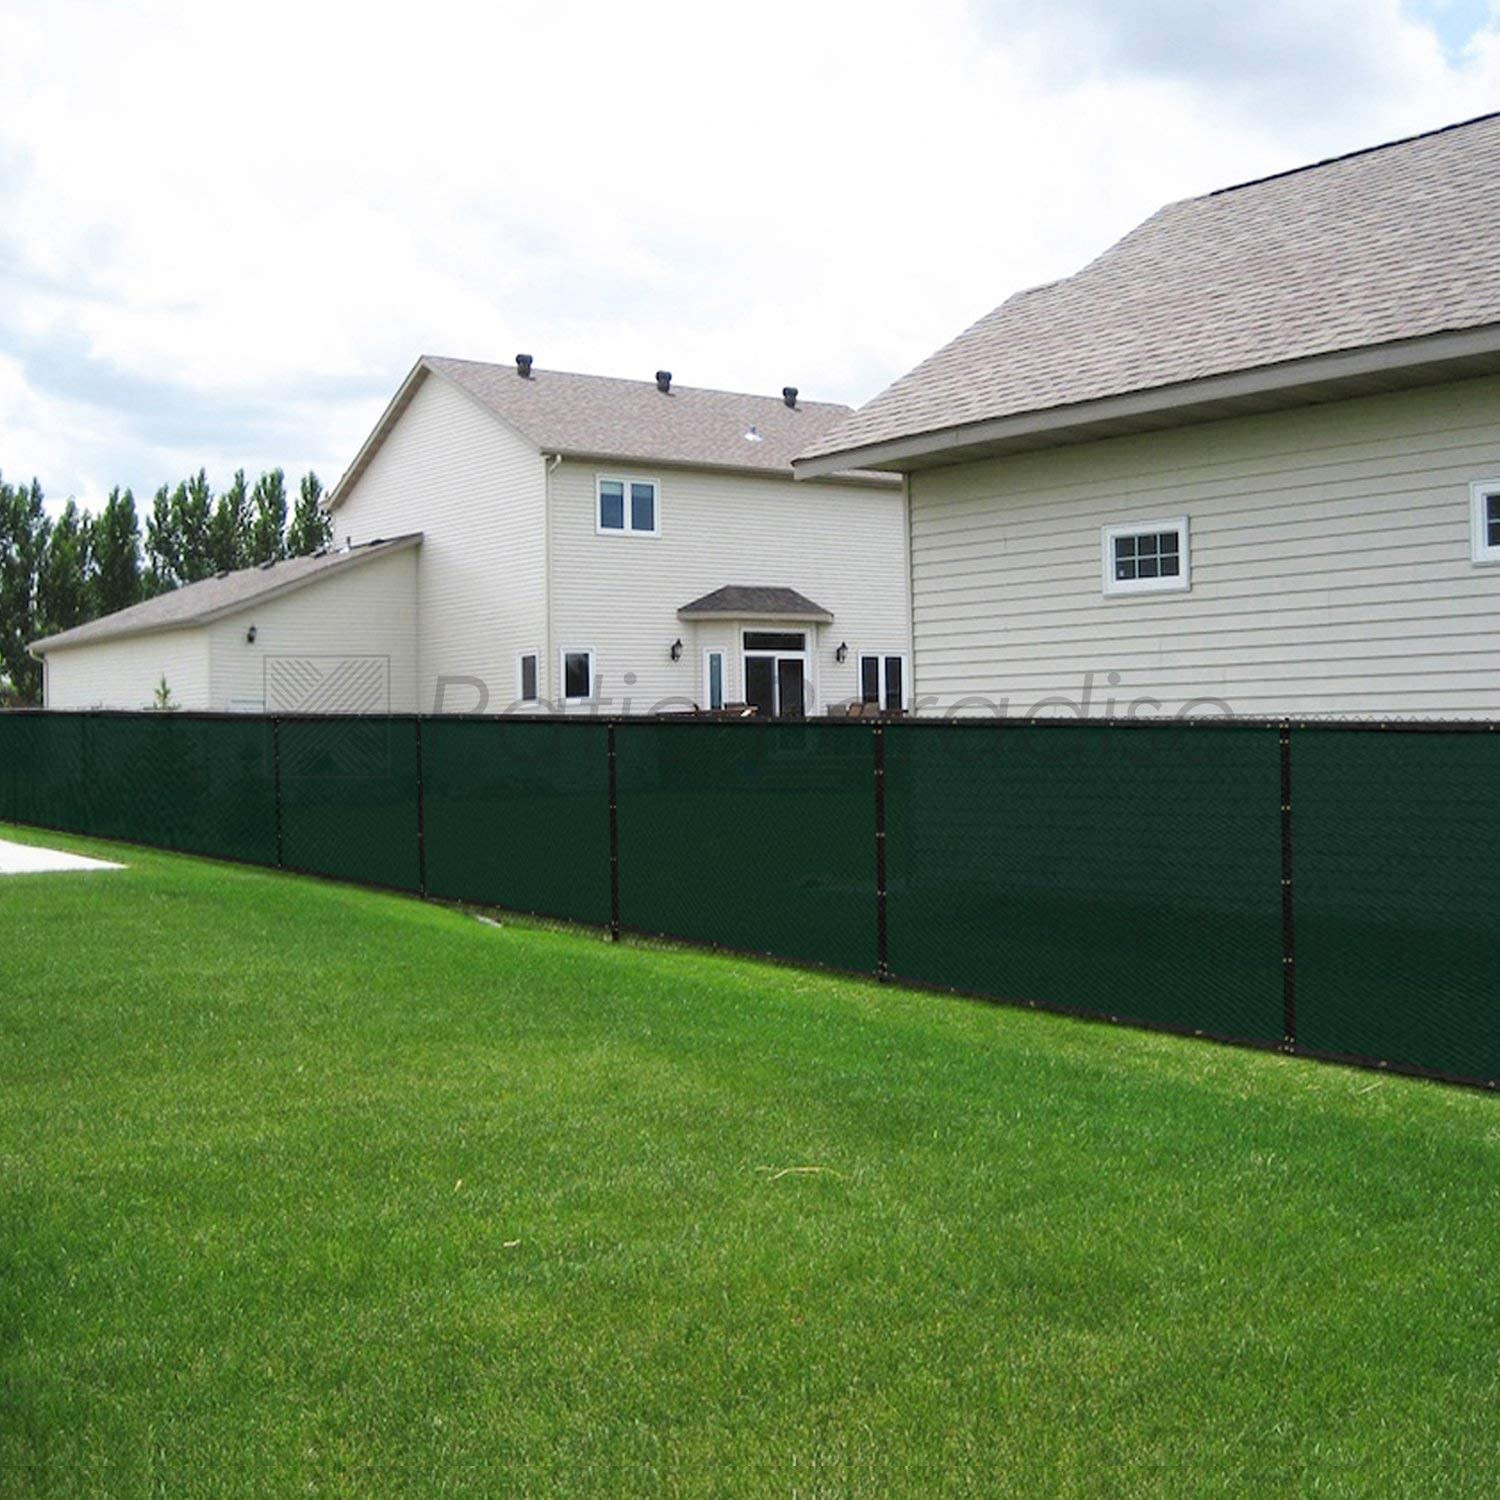 Patio Paradise 8' x 50' Dark Green Fence Privacy Screen, Commercial Outdoor Backyard Shade Windscreen Mesh Fabric with Brass Gromment 88% Blockage- 3 Years Warranty (Customized